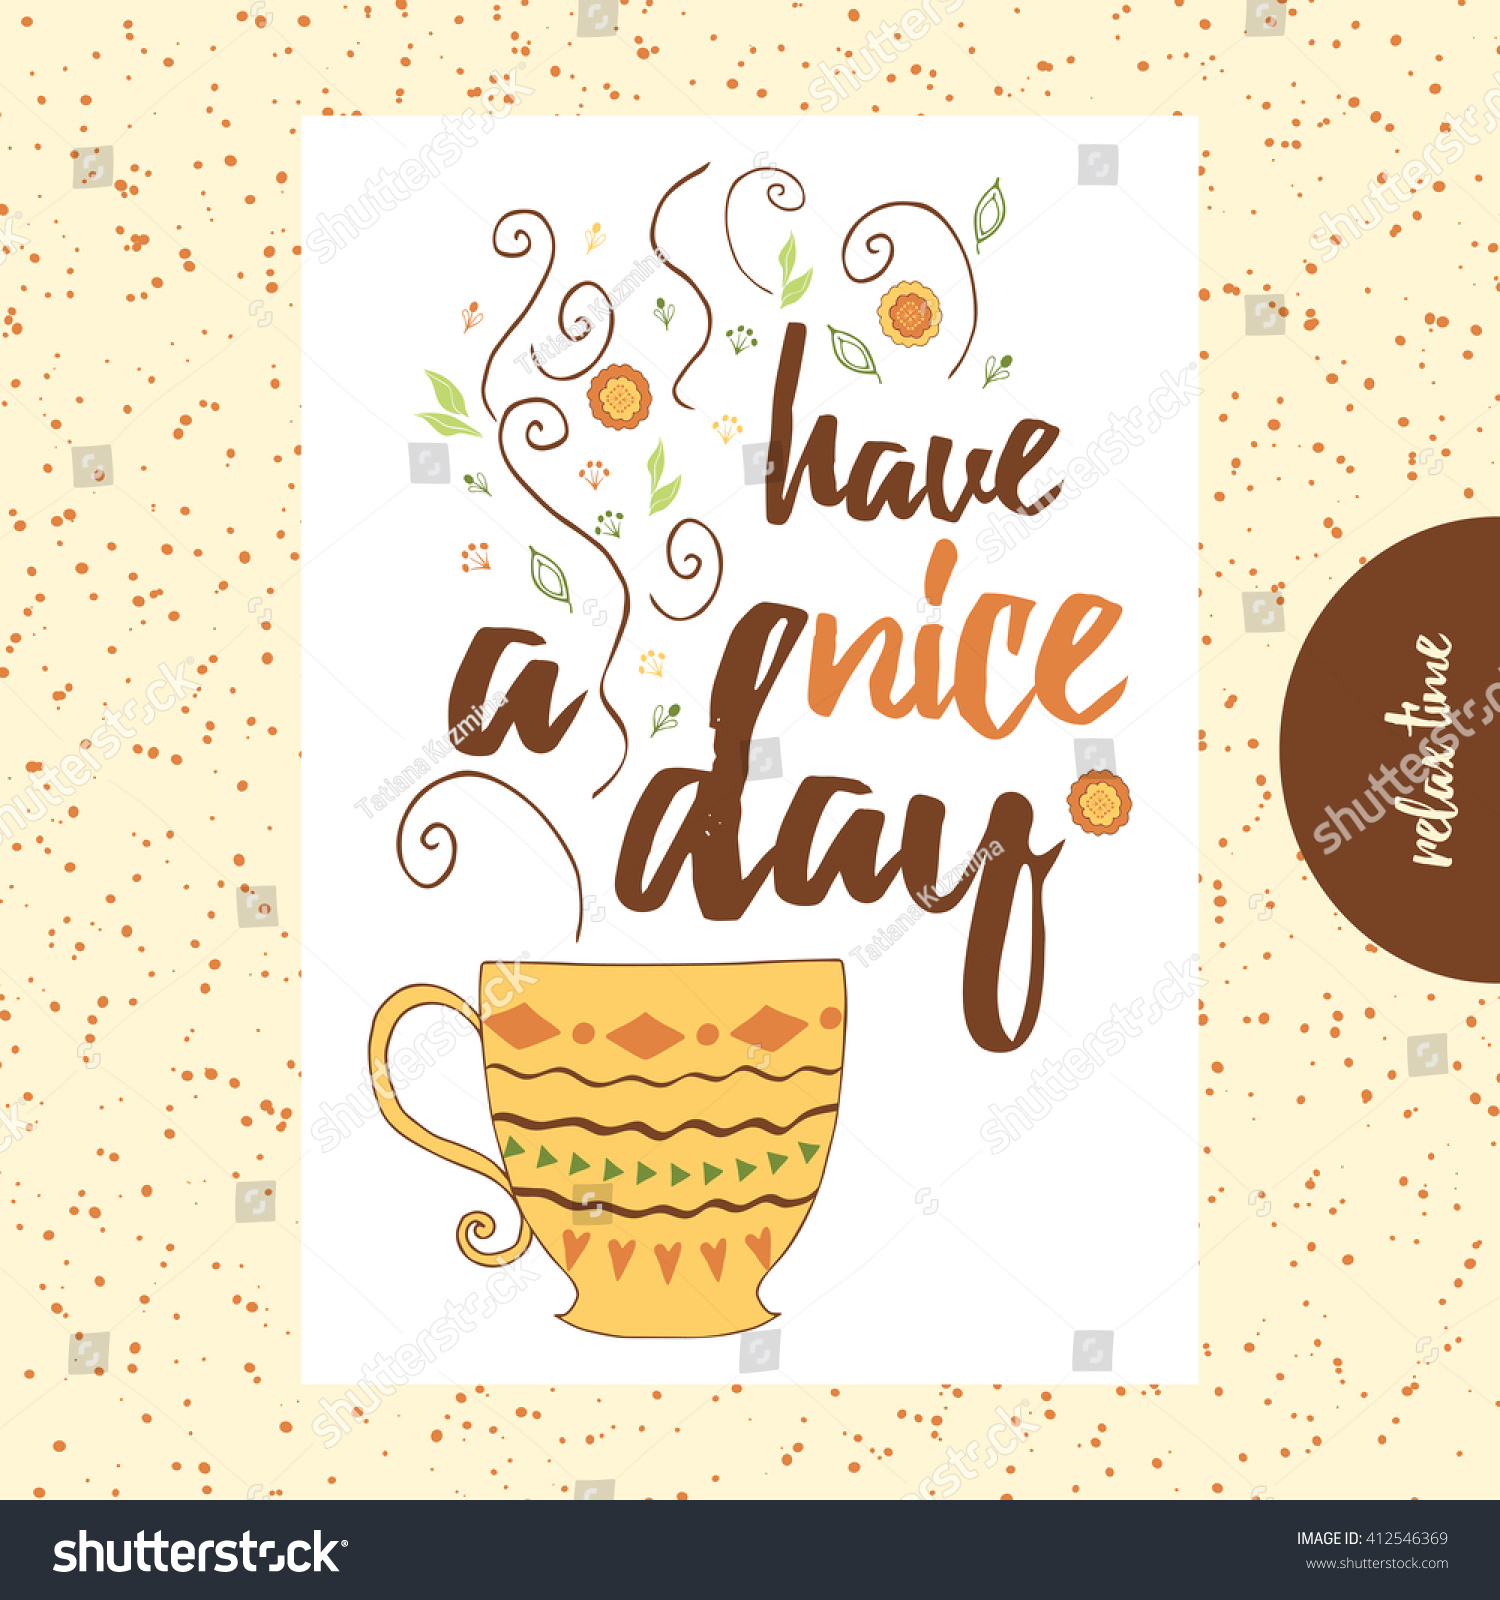 Have Nice Day Cute Funny Cartoon Stock Vector Royalty Free